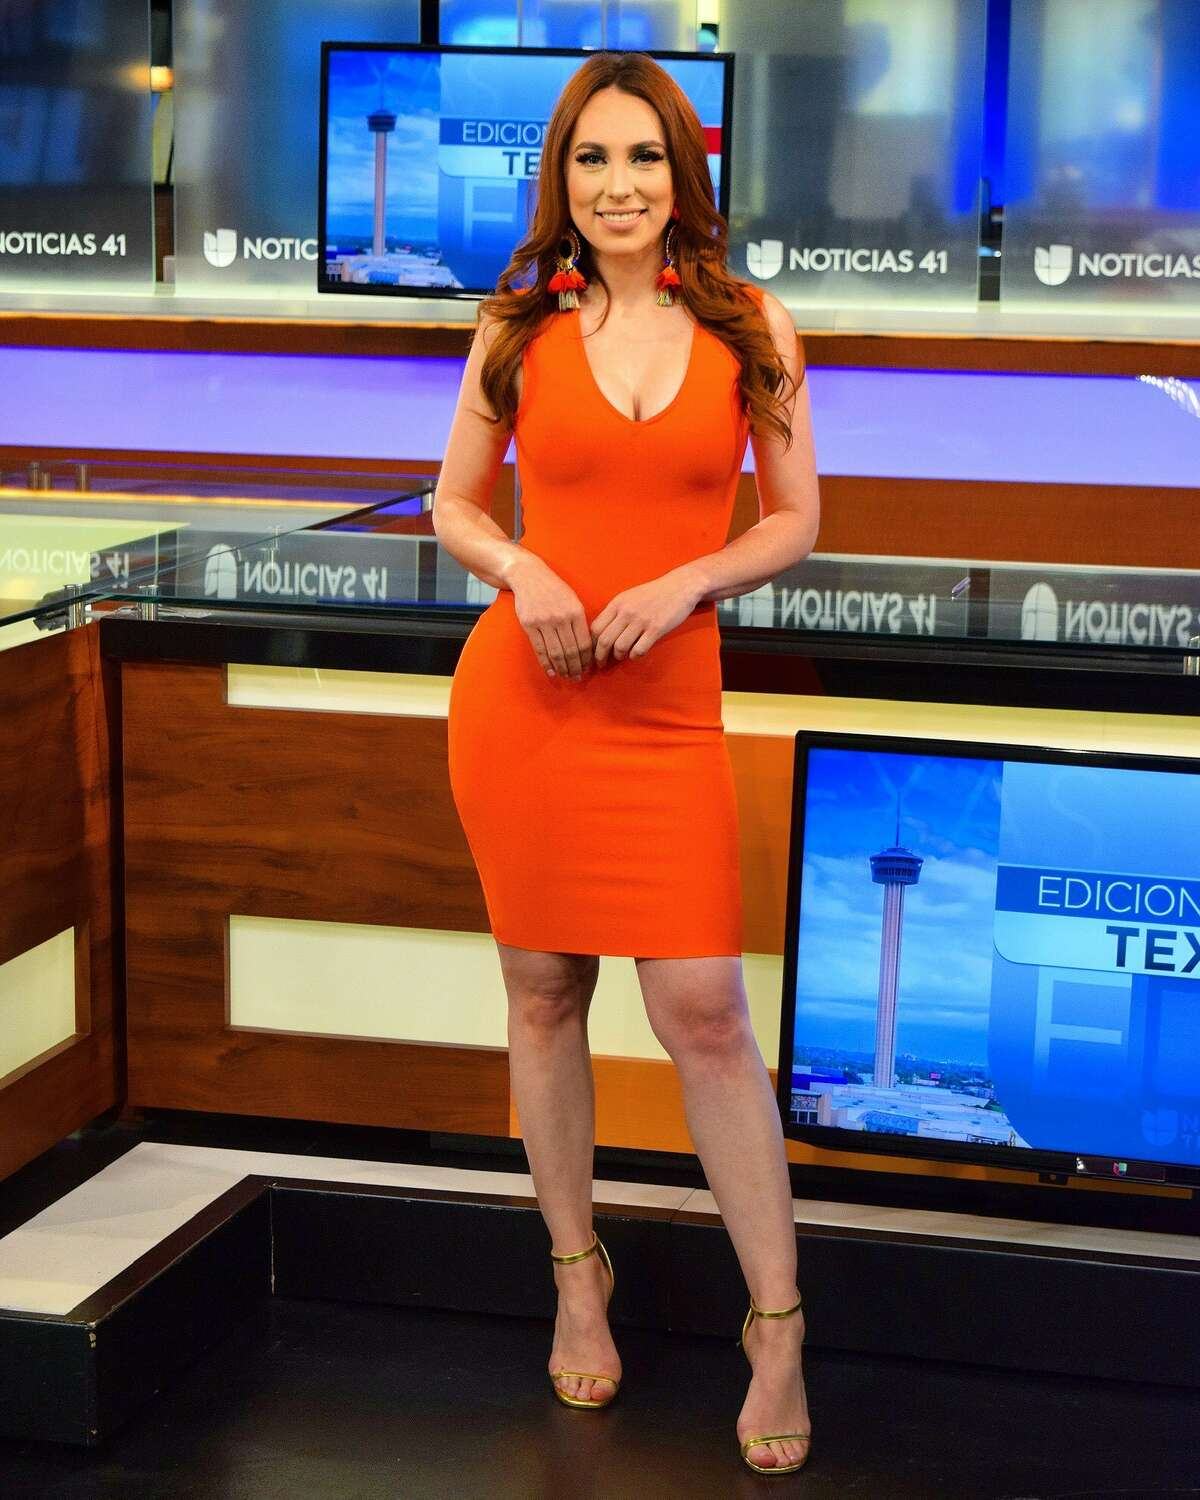 Univision San Antonio's weather anchor has decided to leave the TV business to spend time with her family and start a new career in social media.